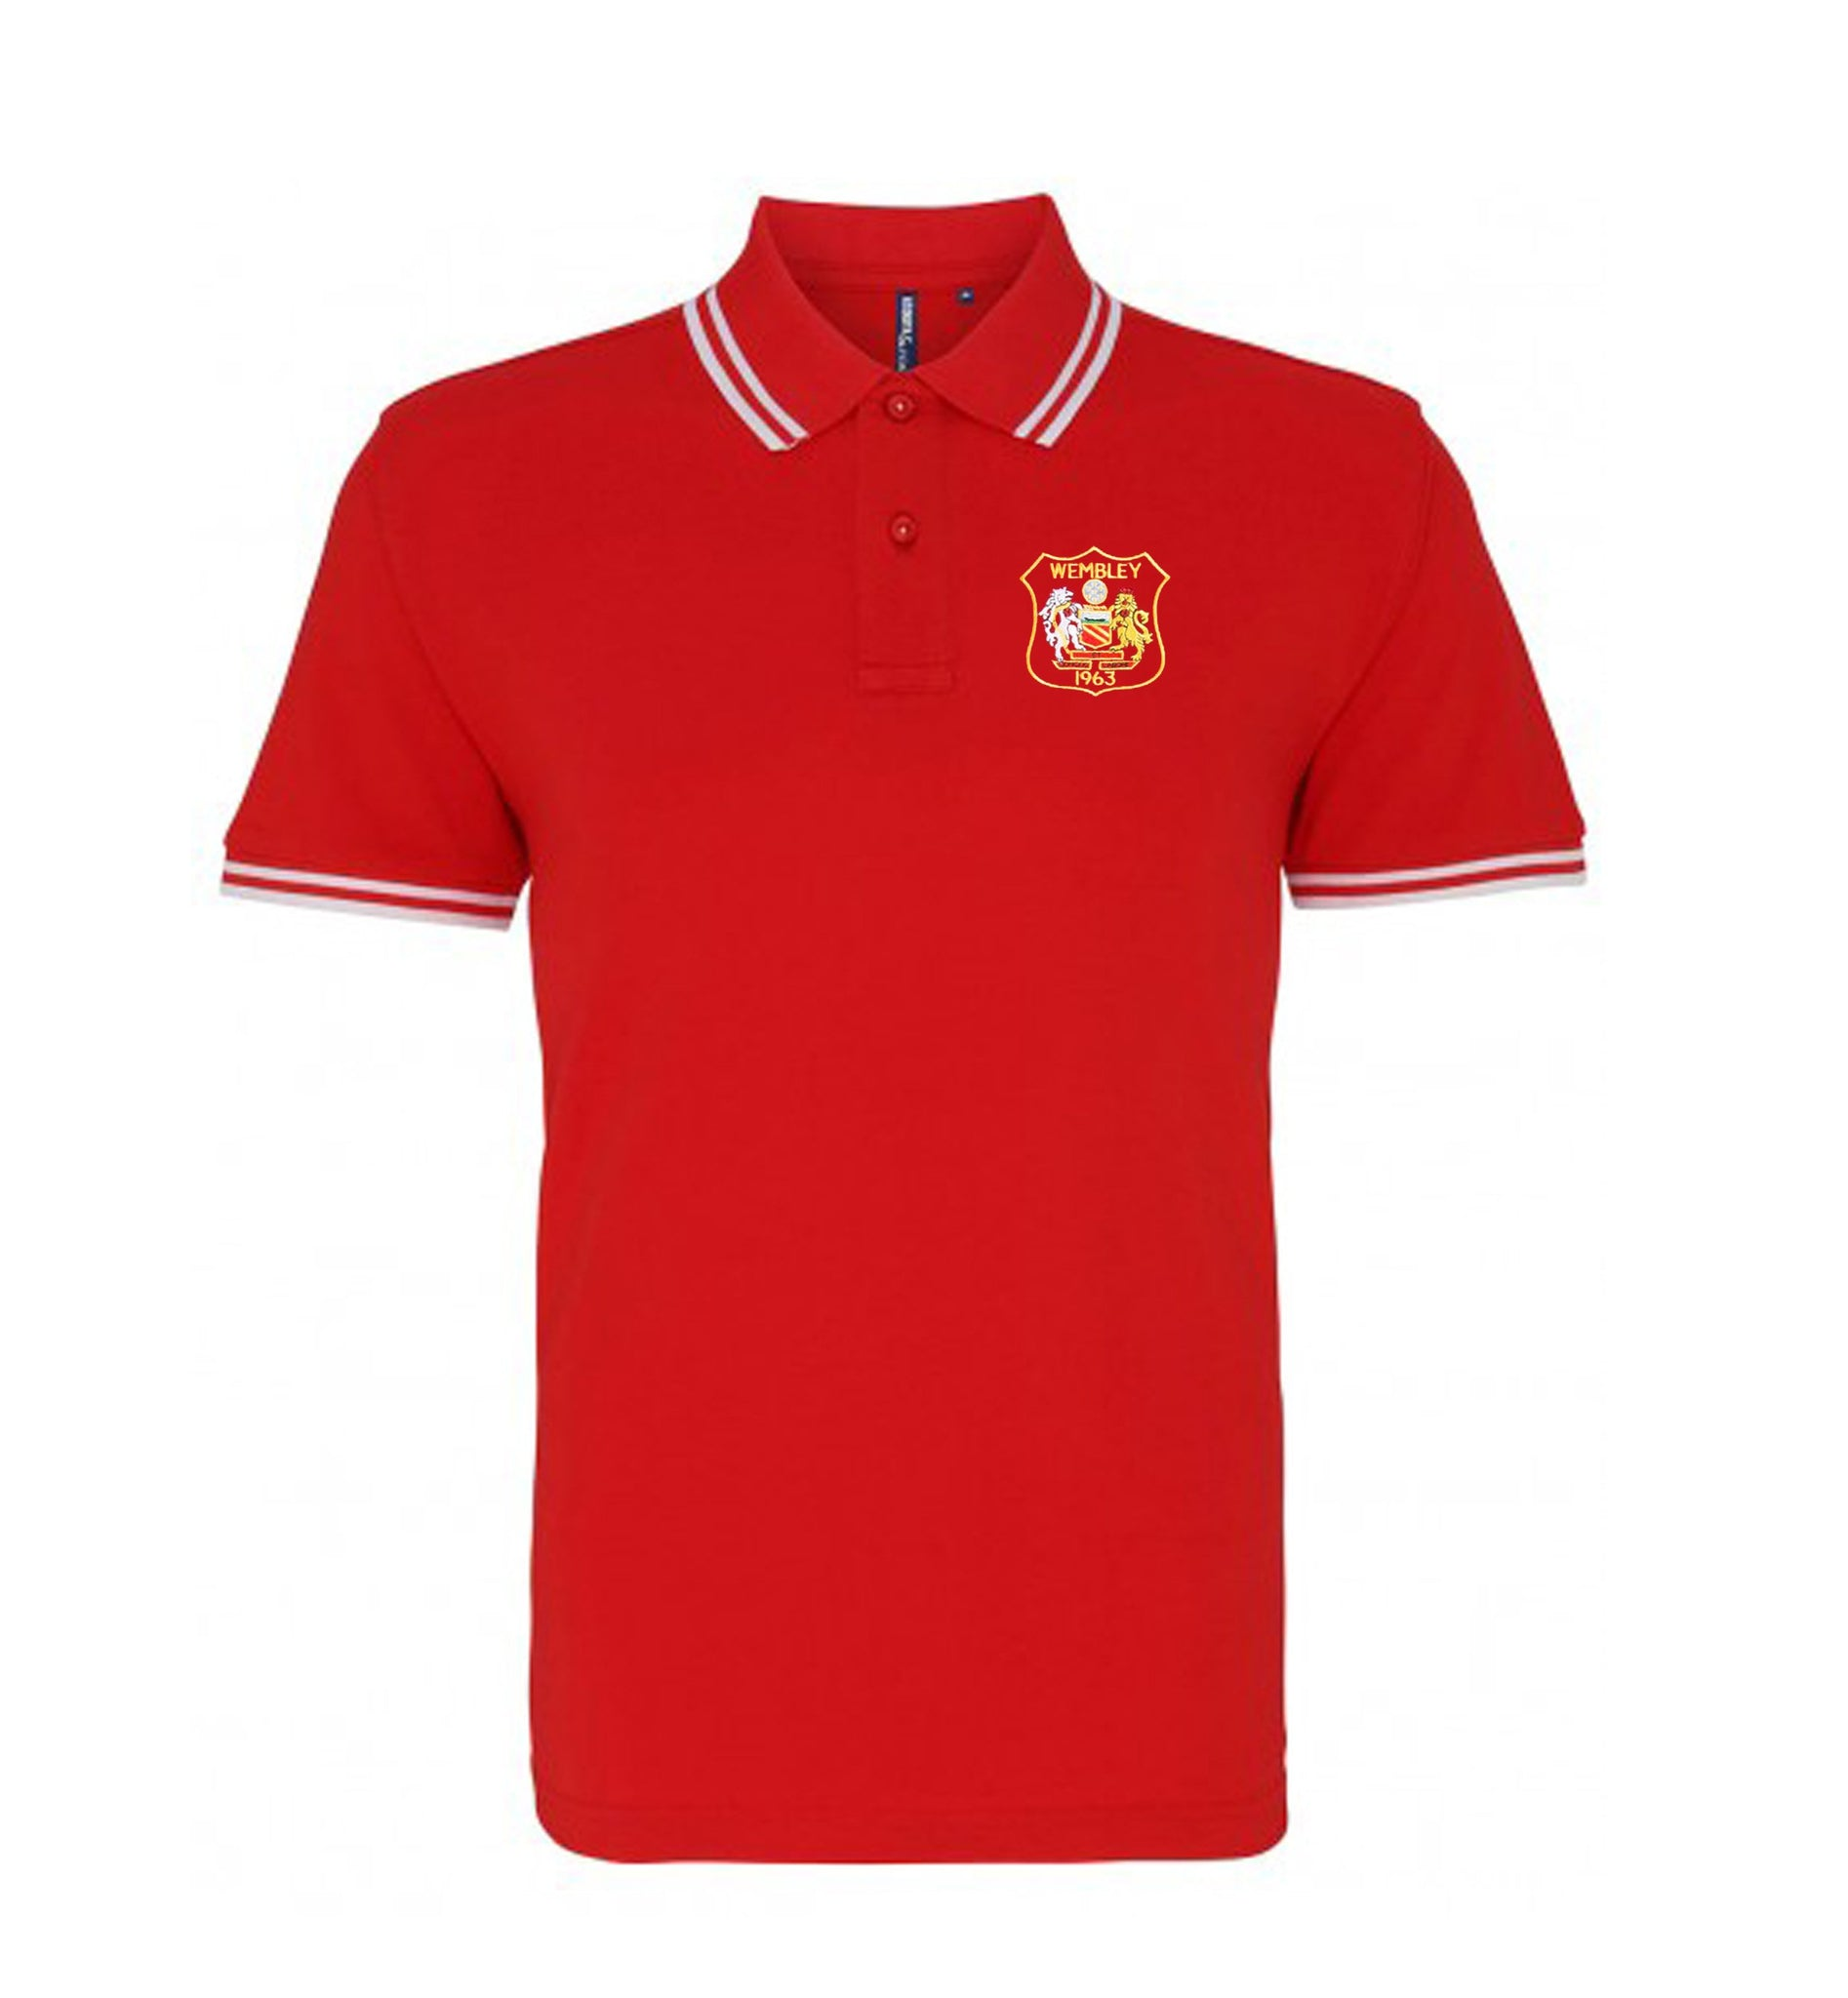 Manchester United Retro Football Iconic Polo 1963 - Polo